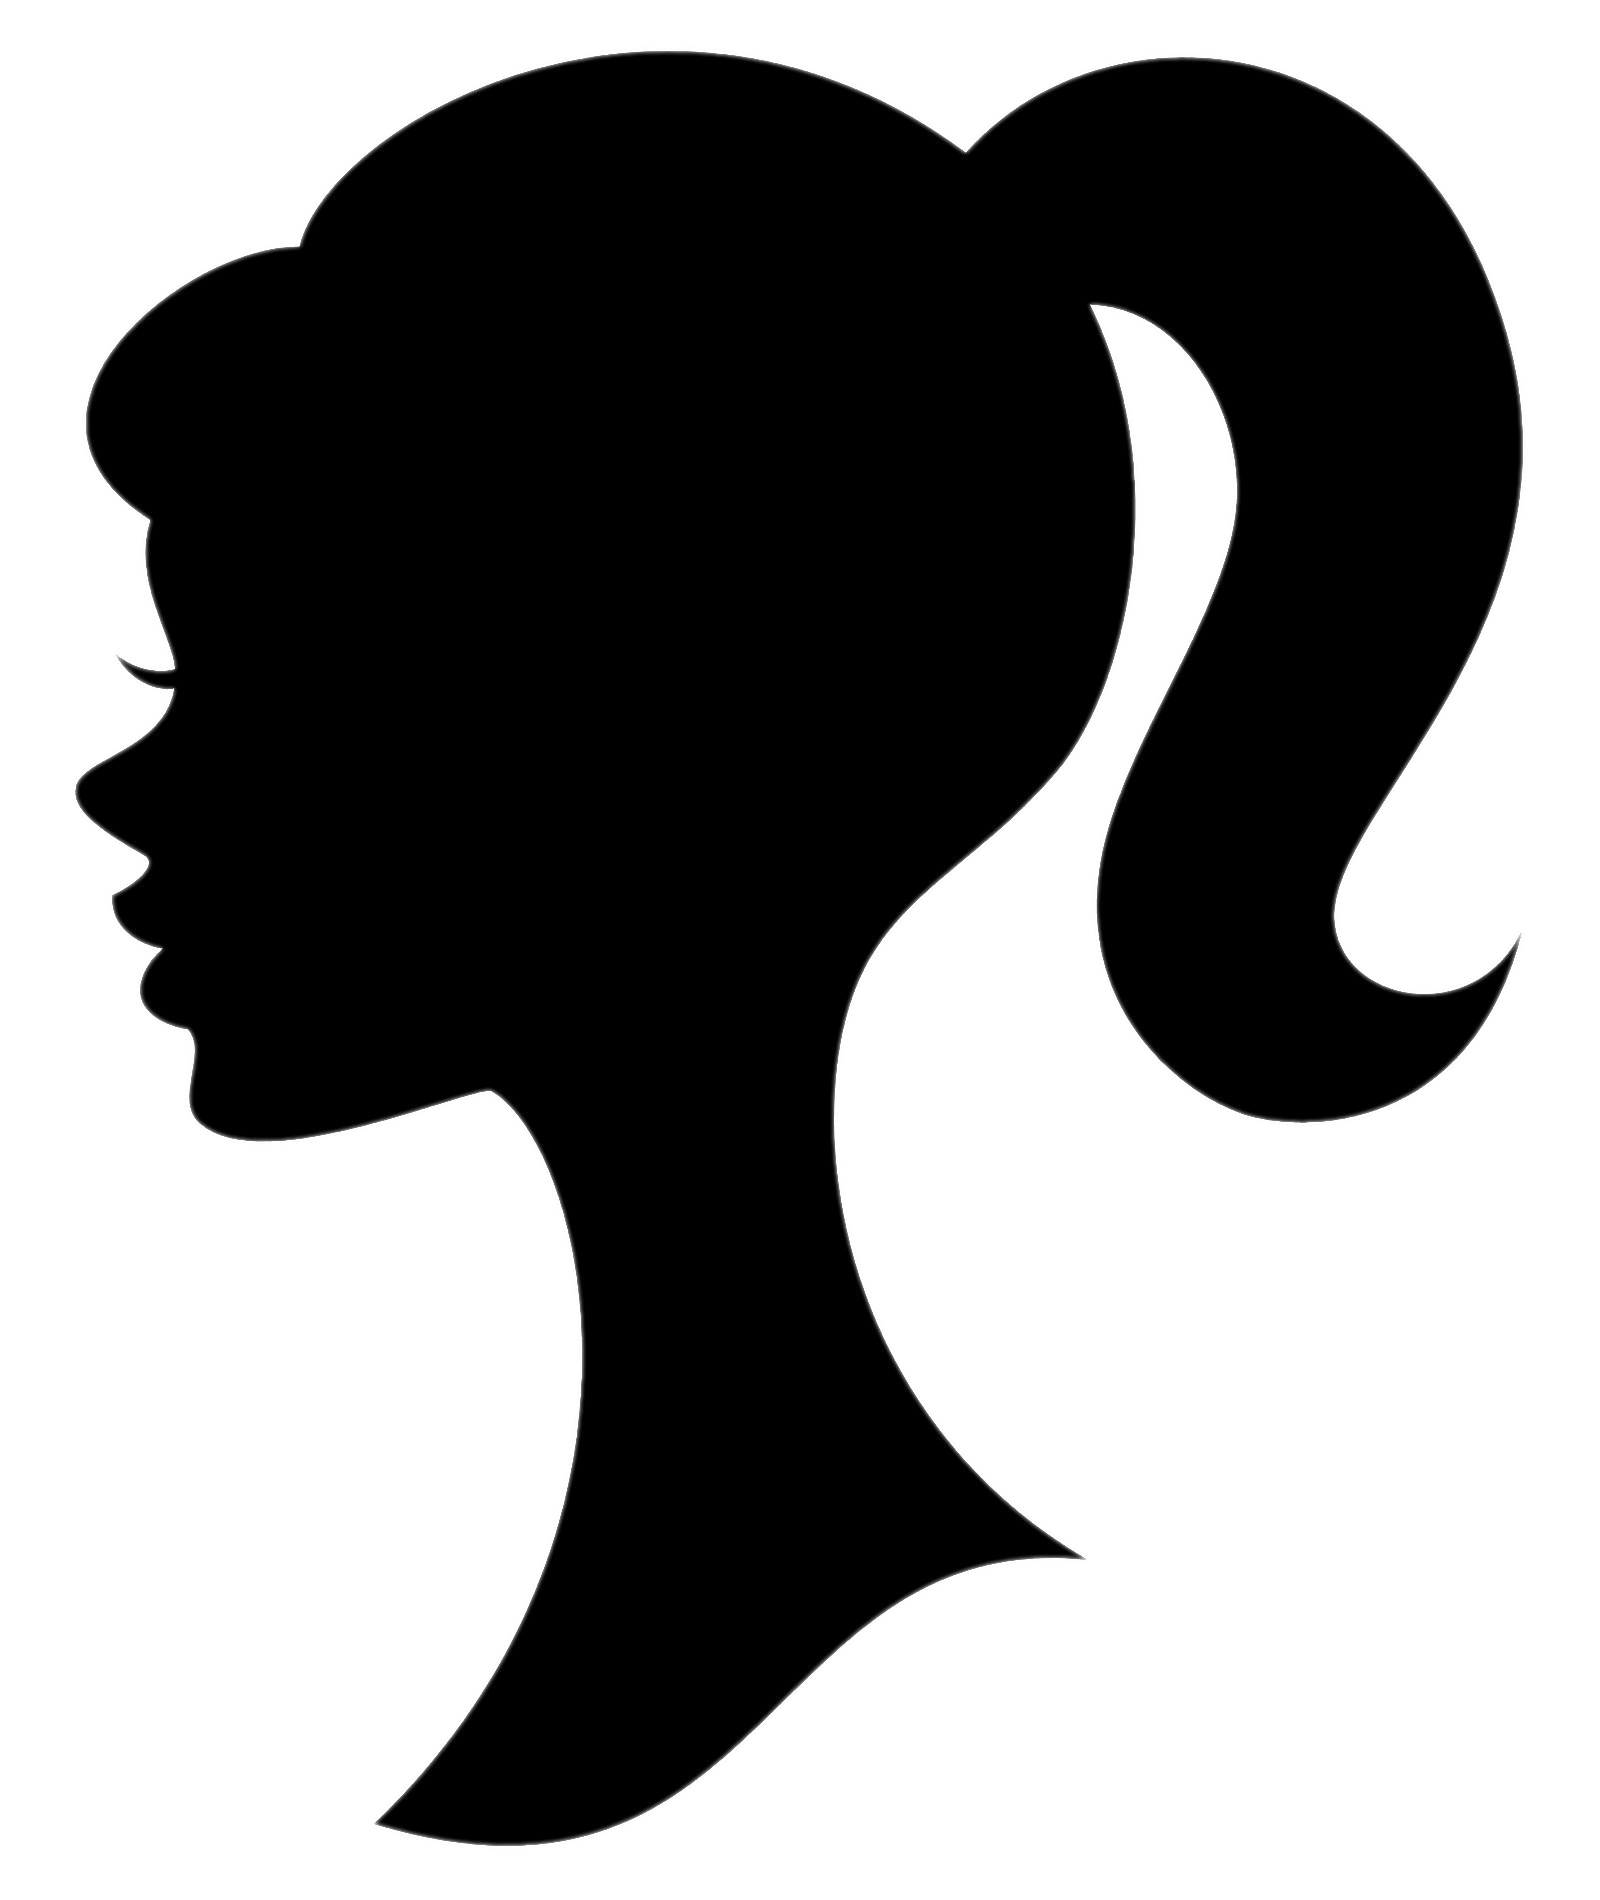 Of girl with ponytail. Silhouette clipart cheerleader